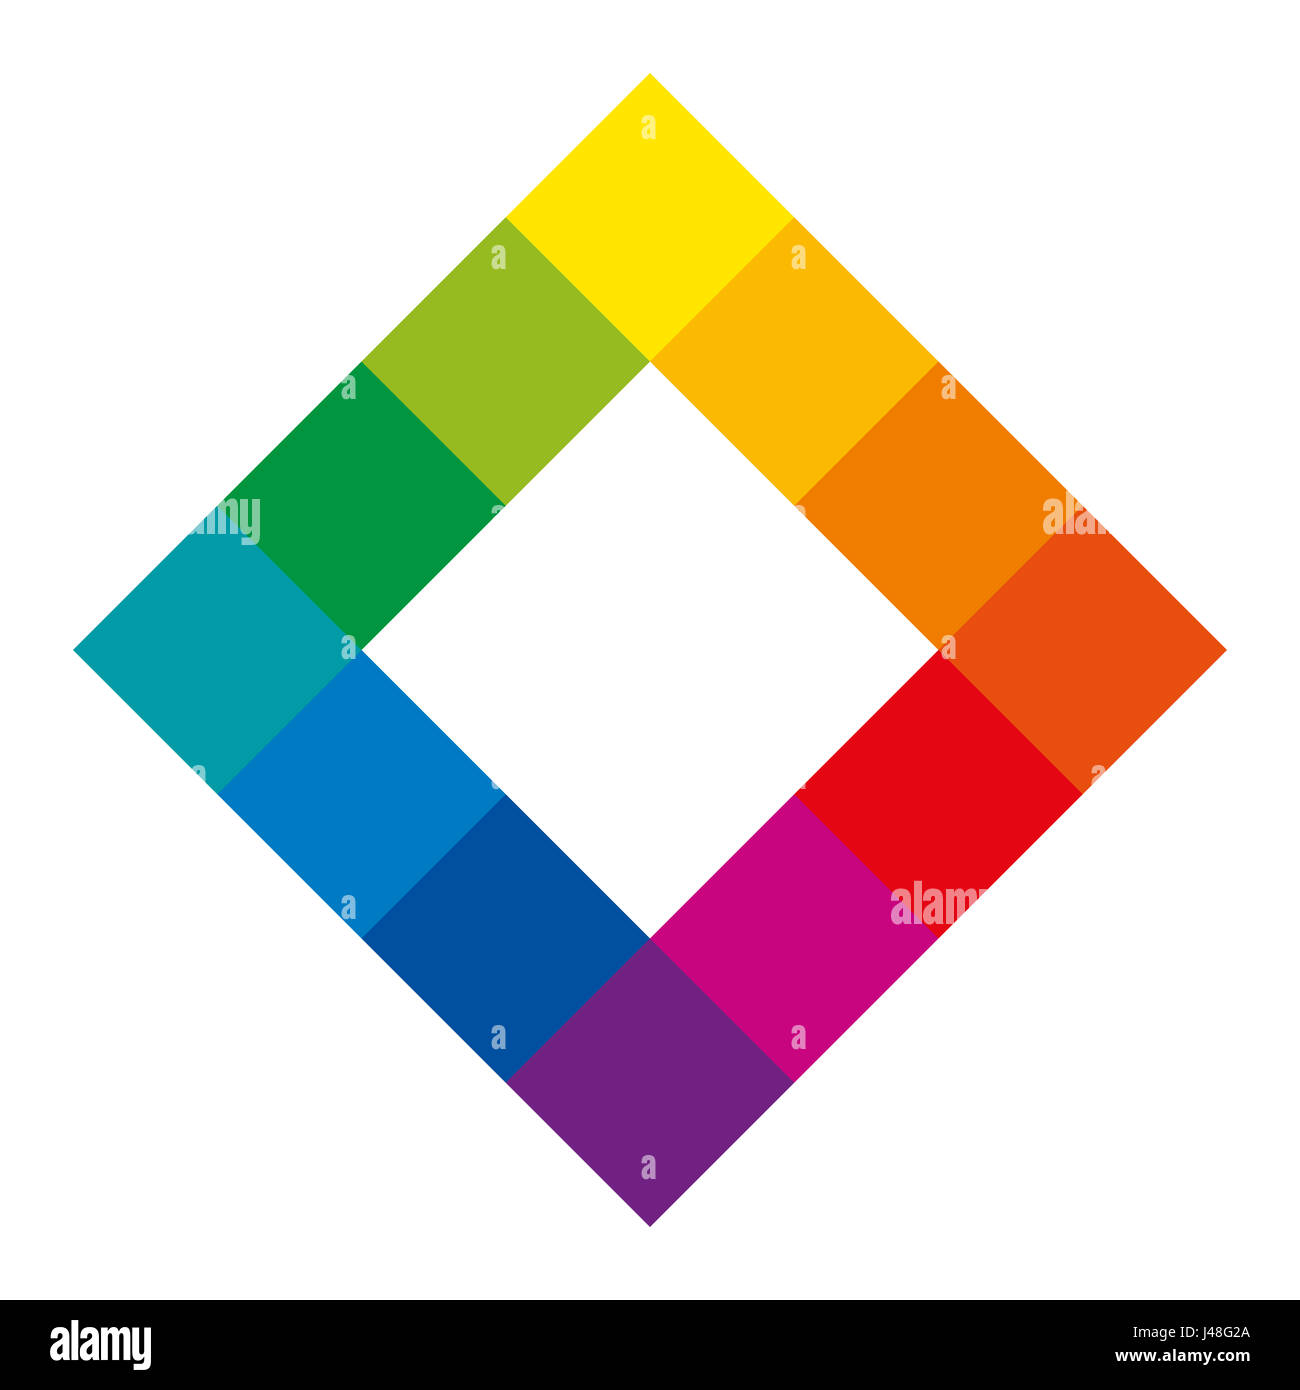 Twelve Unique Color Hues Of The Wheel In Square Shape Showing Relationship Between Primary Secondary And Tertiary Colors